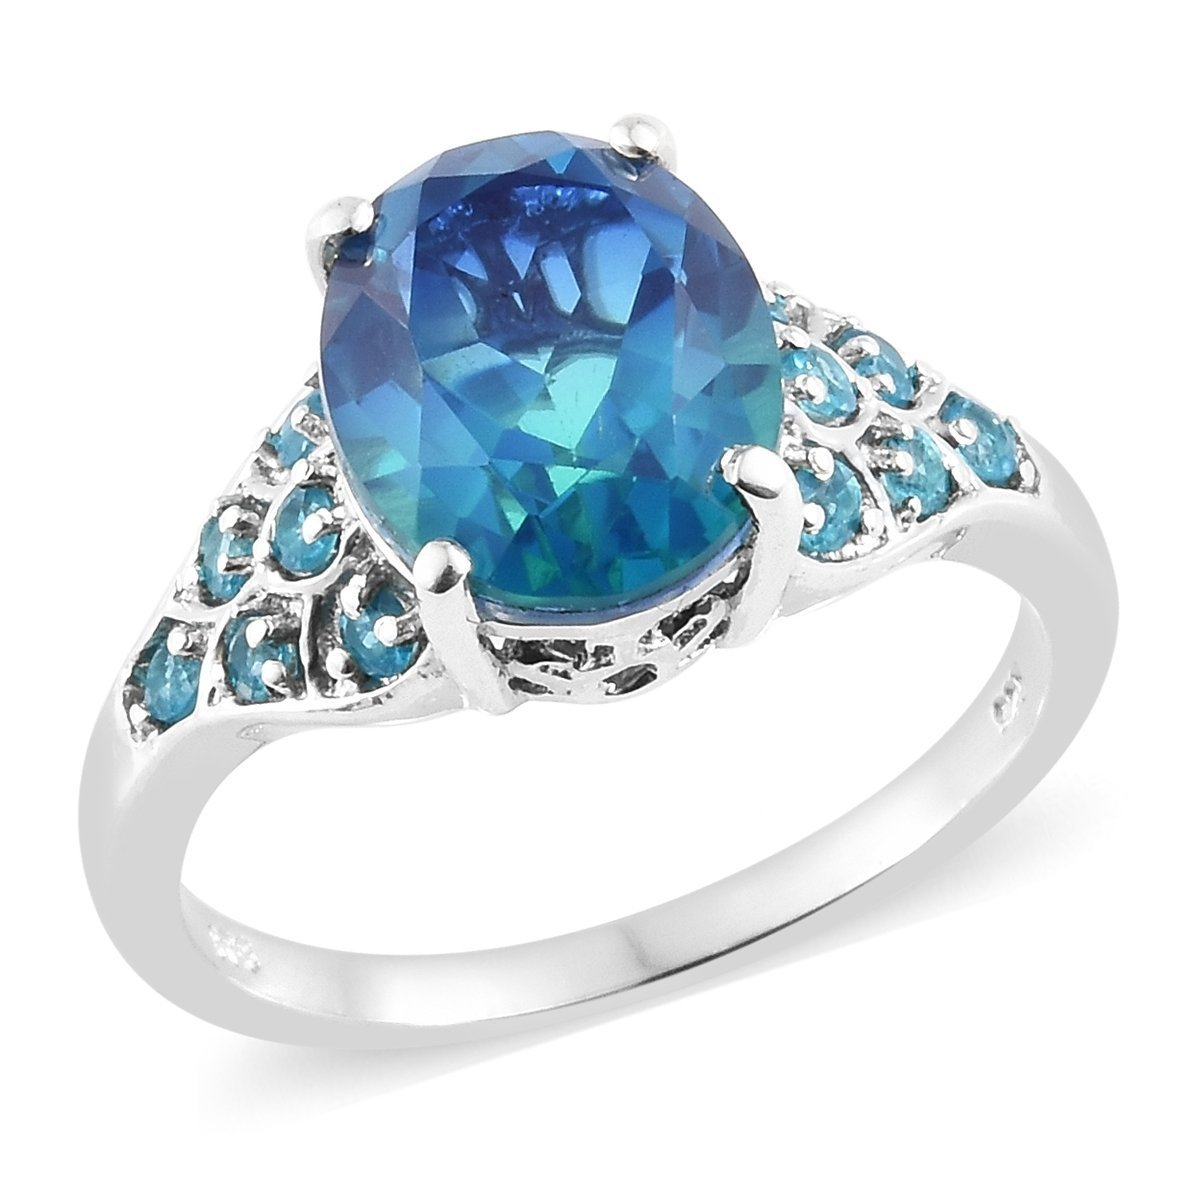 925 Sterling Silver Platinum Plated Oval Ocean Quartz, Neon Apatite Ring for Women Size 9 Cttw 4.8